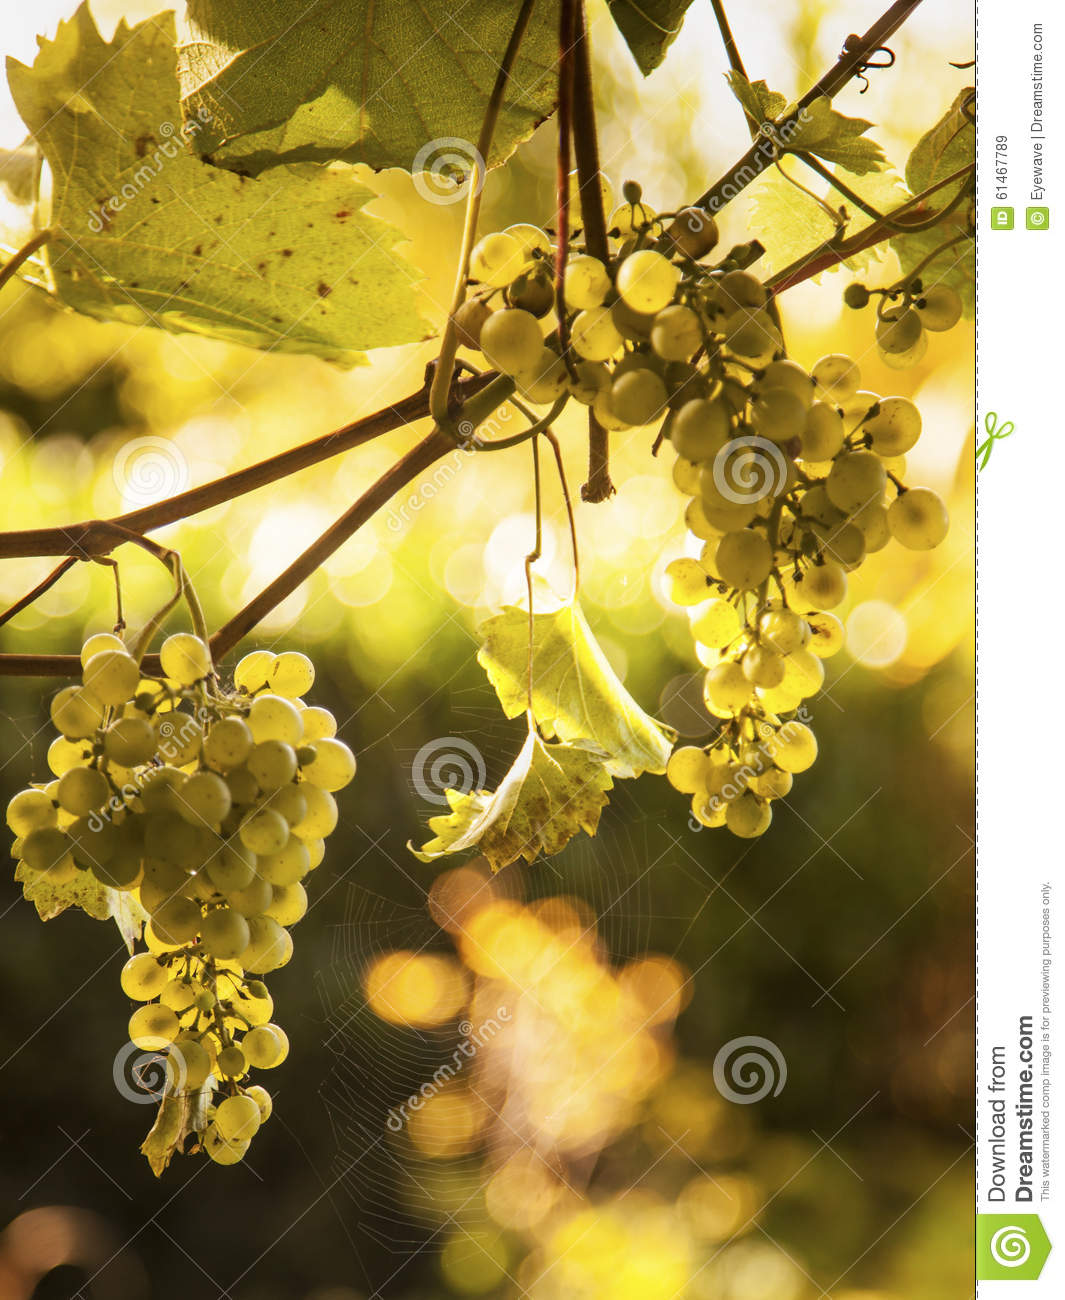 Grapes on vine and spider web in sunlight